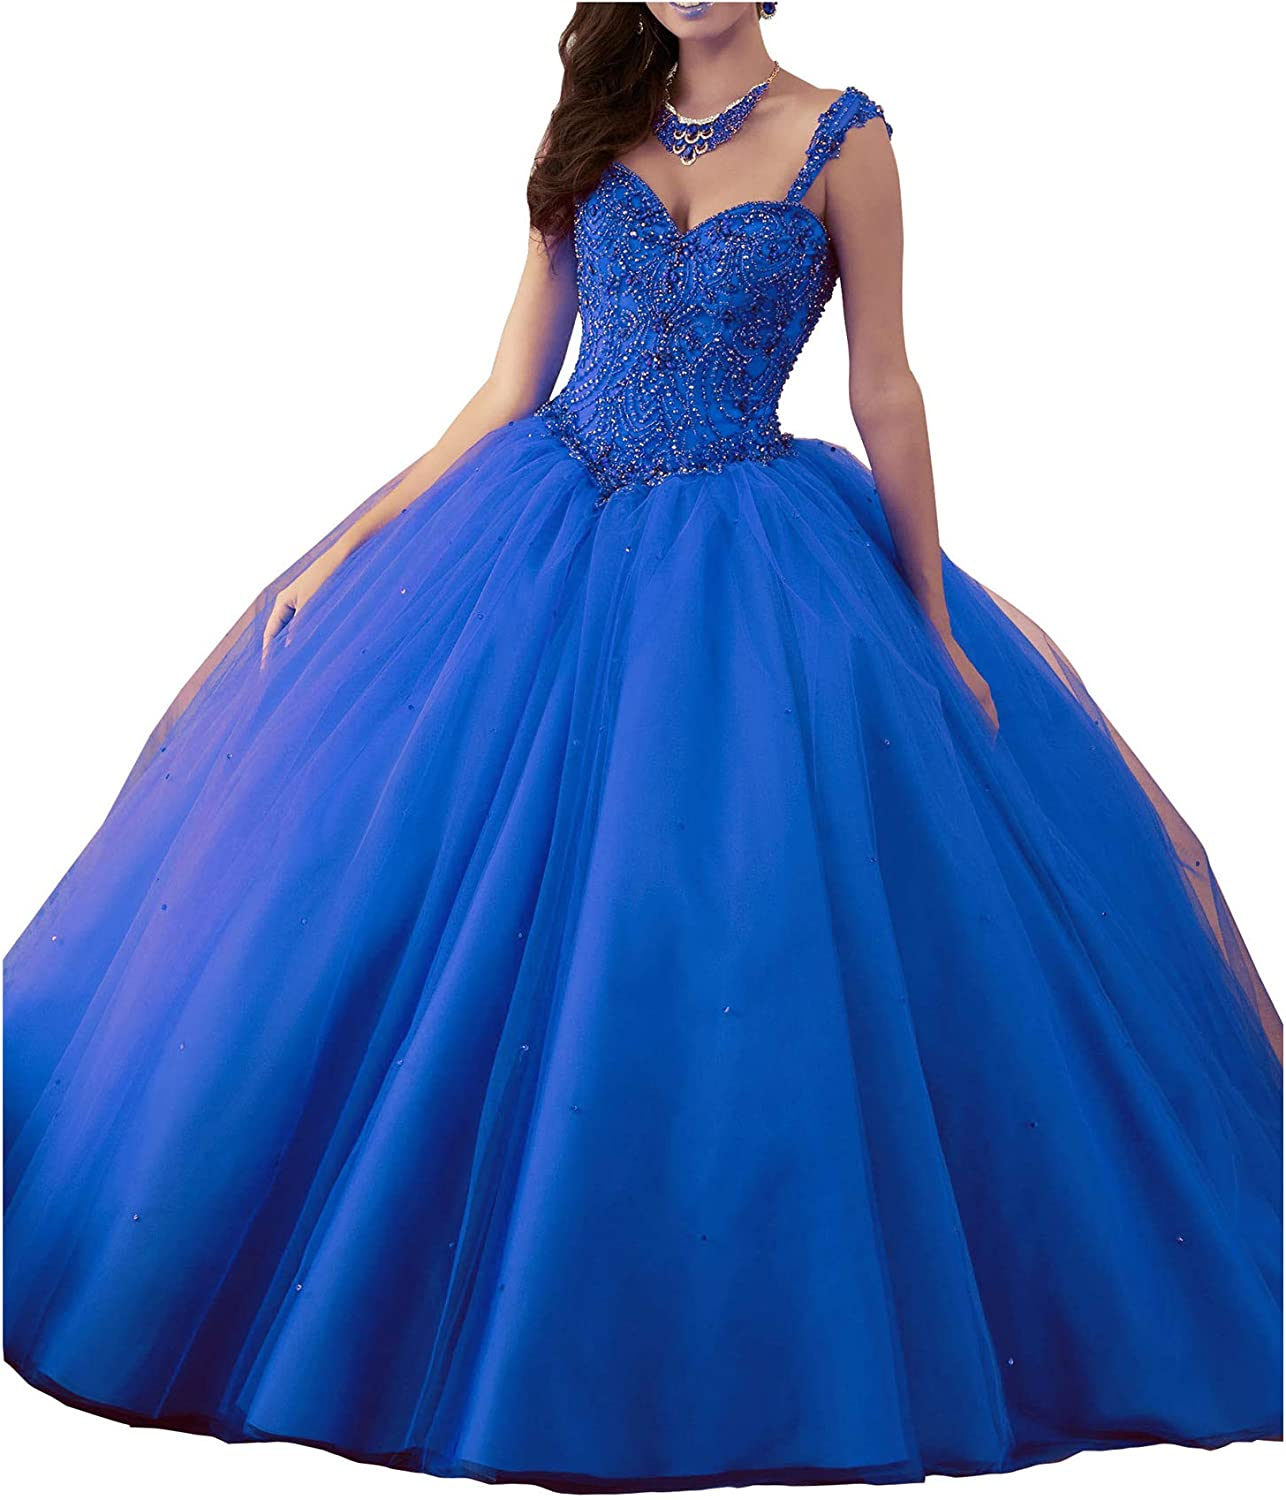 Yang Sweetheart Women's Beaded Ball Gowns Tulle Girls 16 Quinceanera Dress